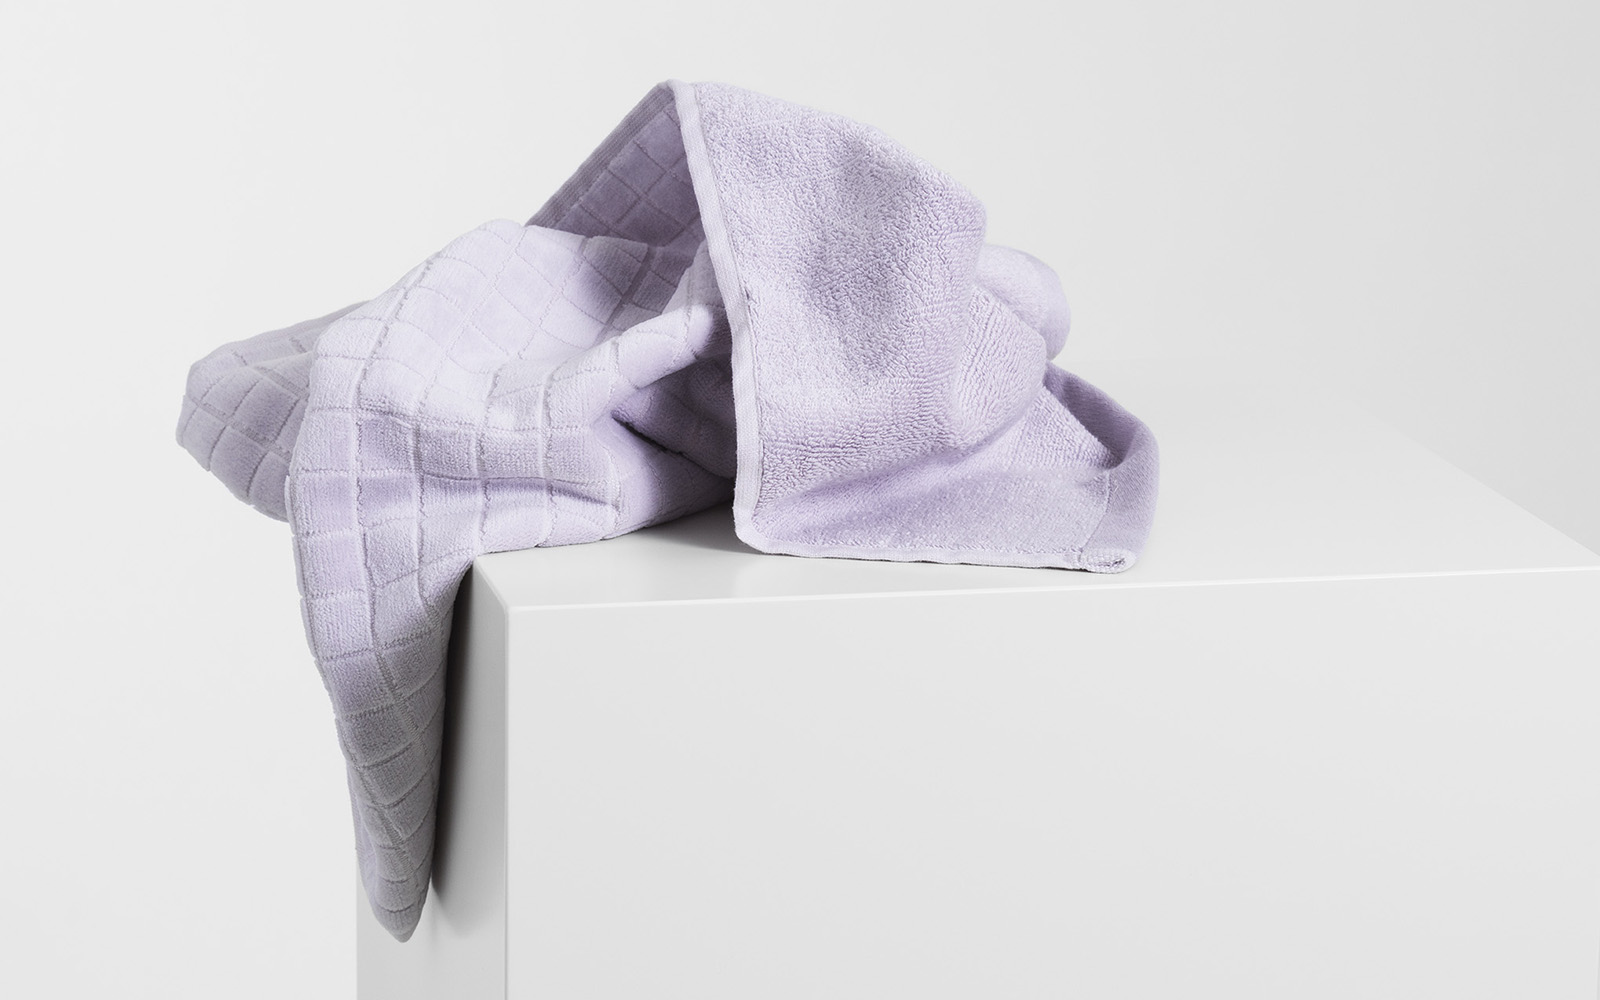 Imprint Towel - Normann Copenhagen